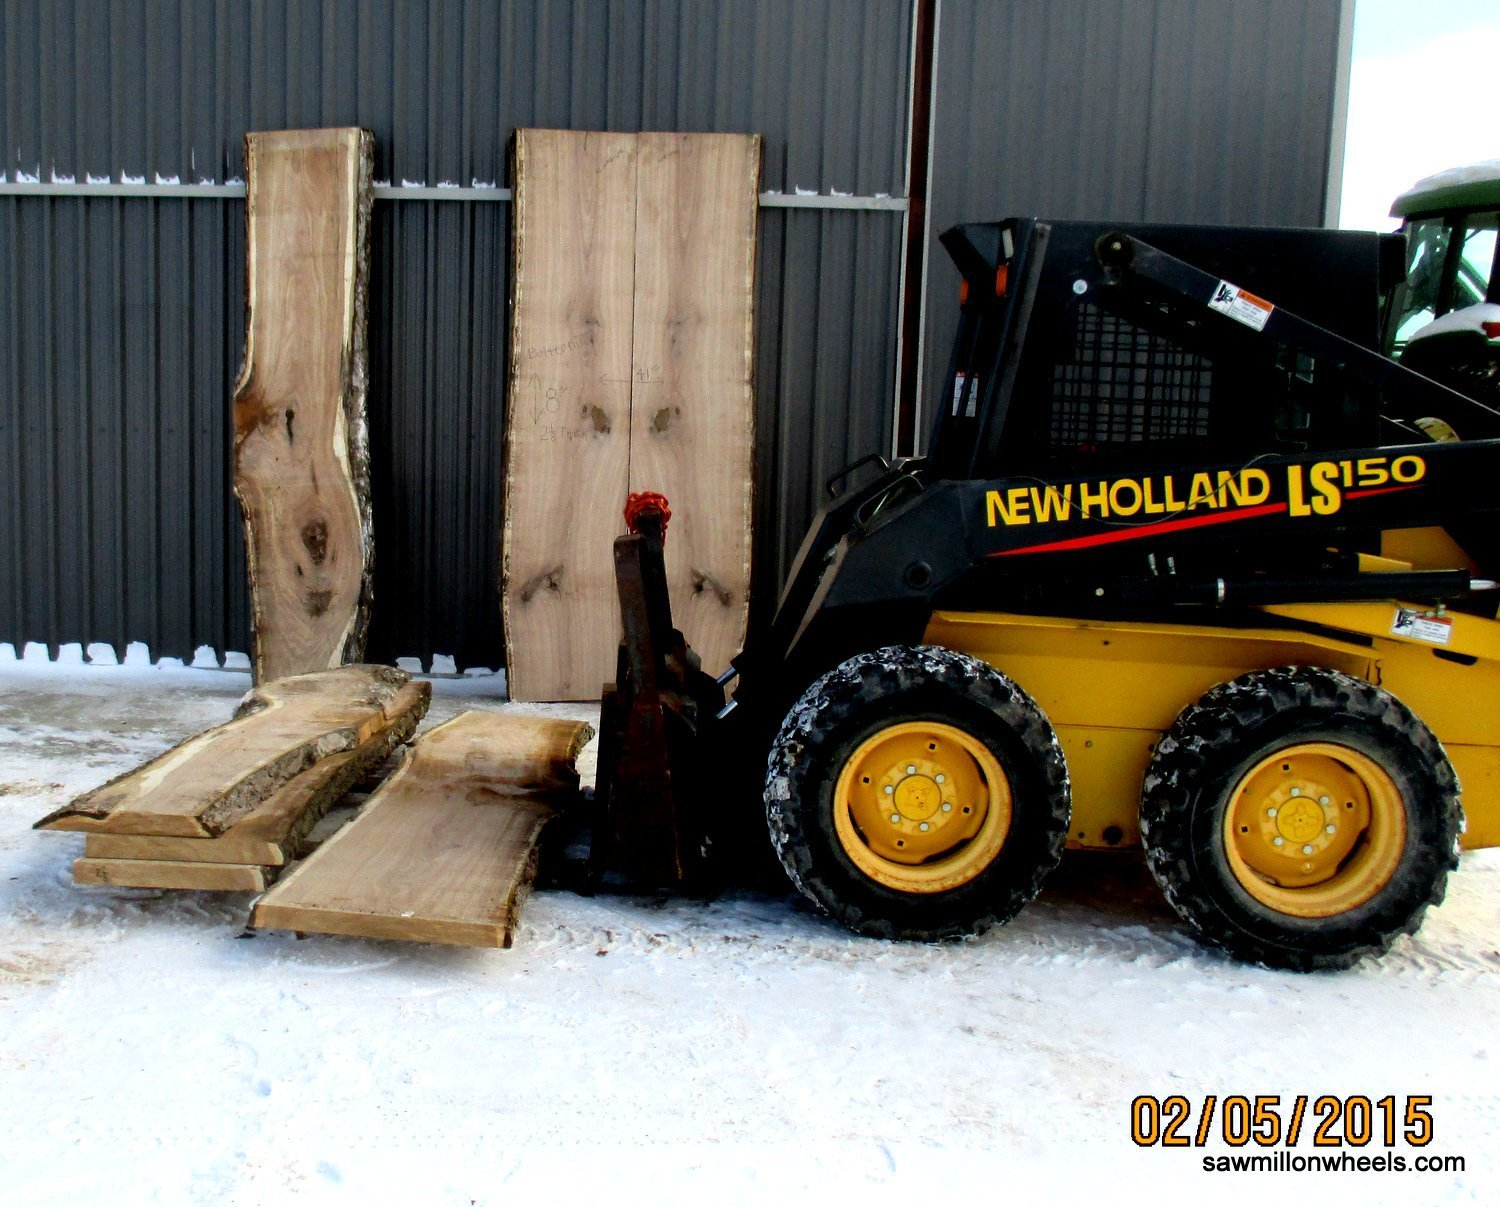 Live edge lumber for woodworking projects.